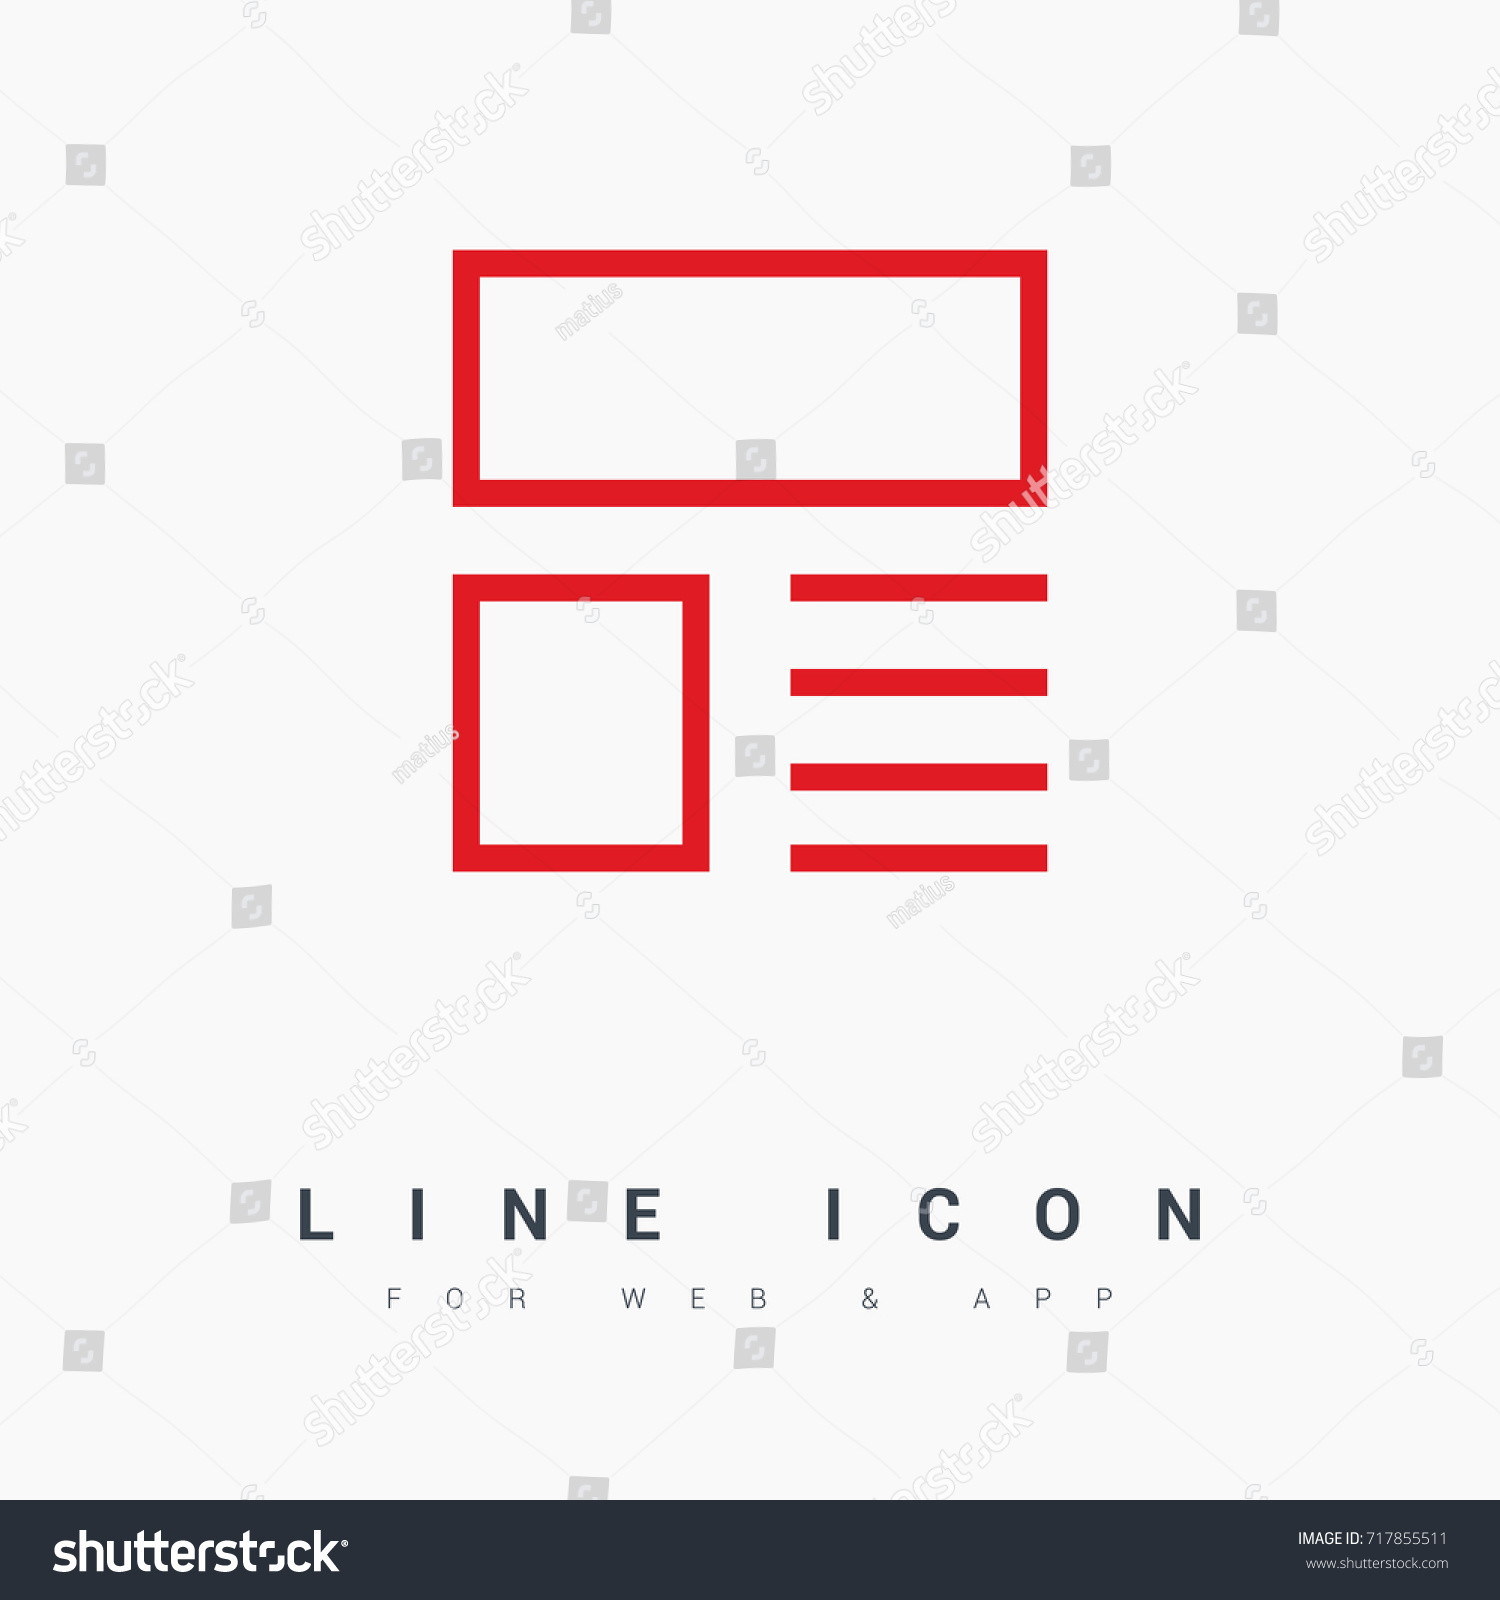 News Reviews Line Vector Icon Stock Vector (Royalty Free) 717855511